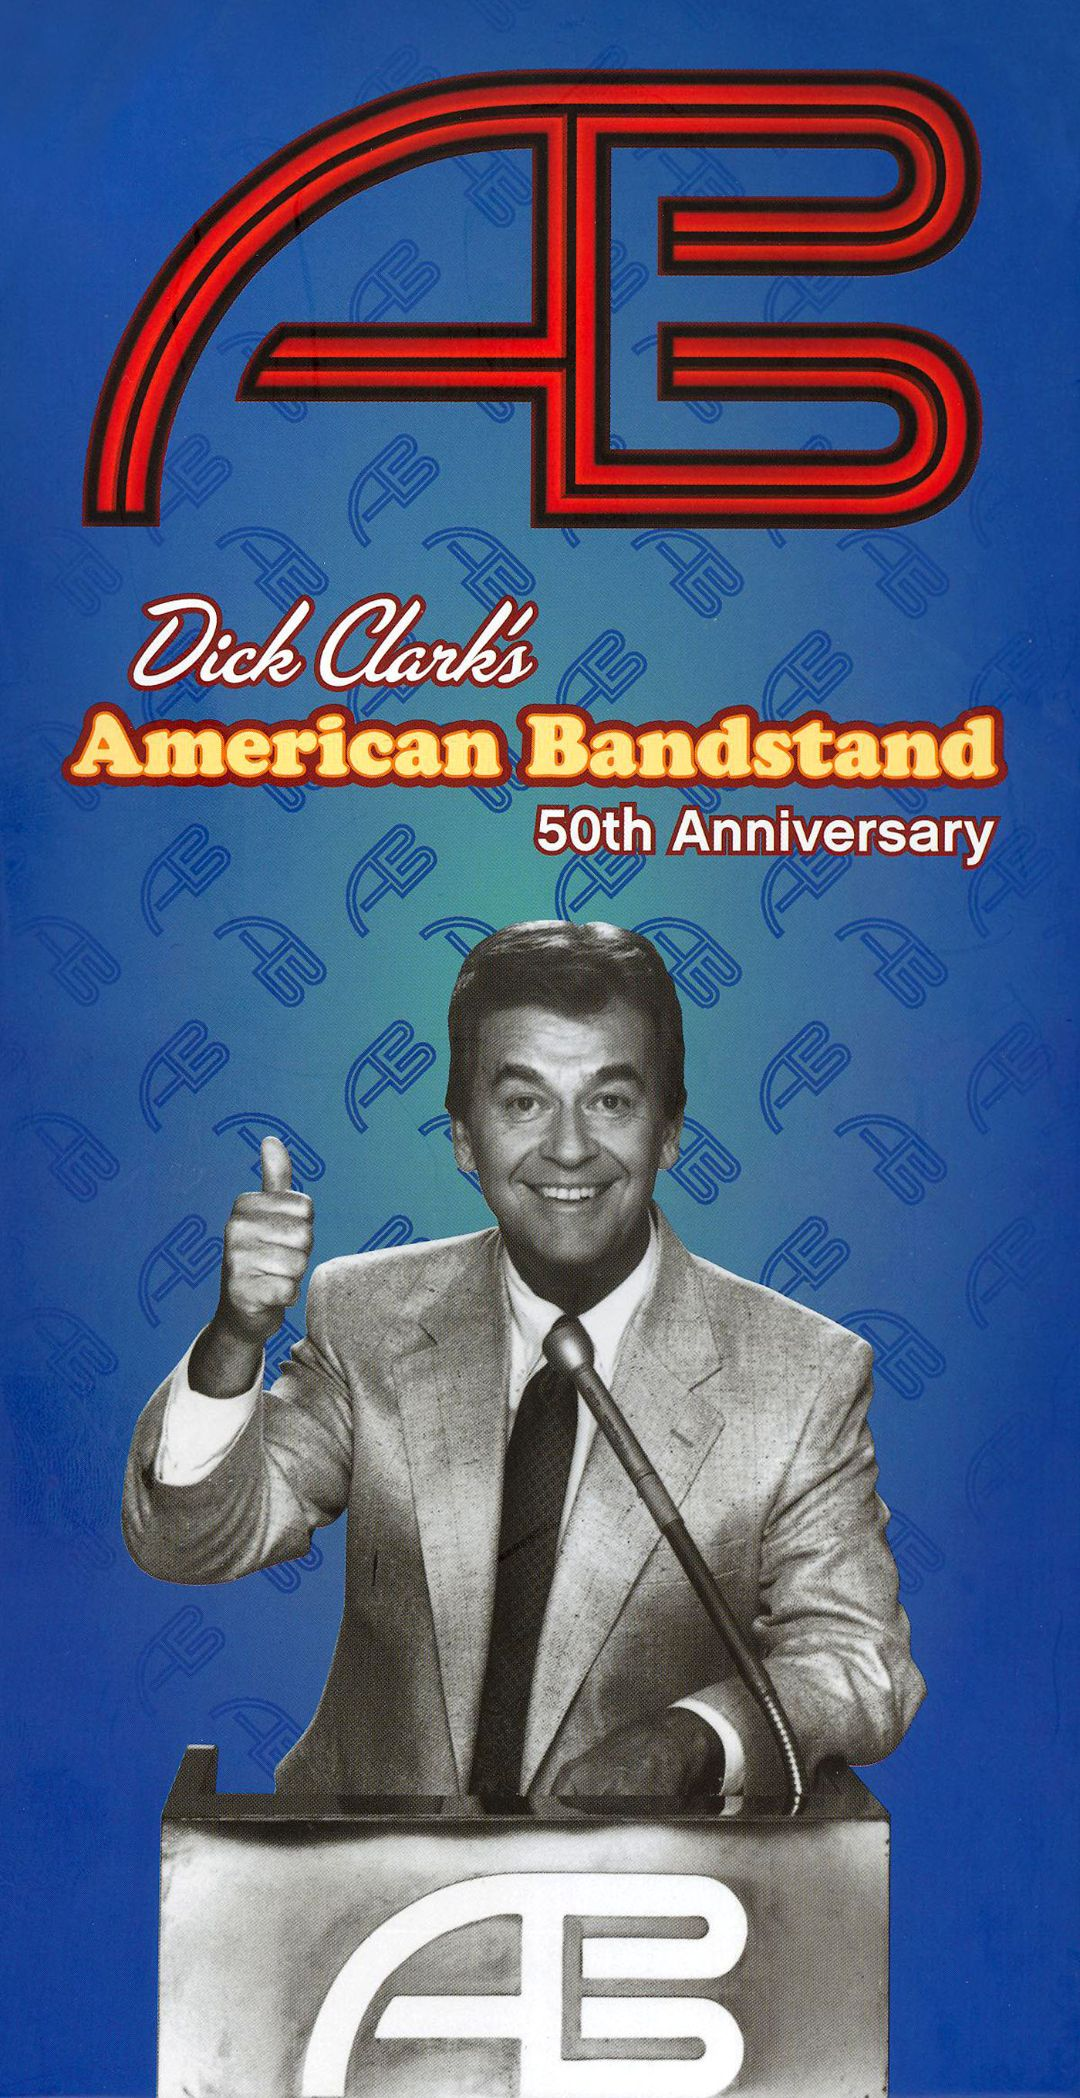 Dick Clarks American Bandstand 32